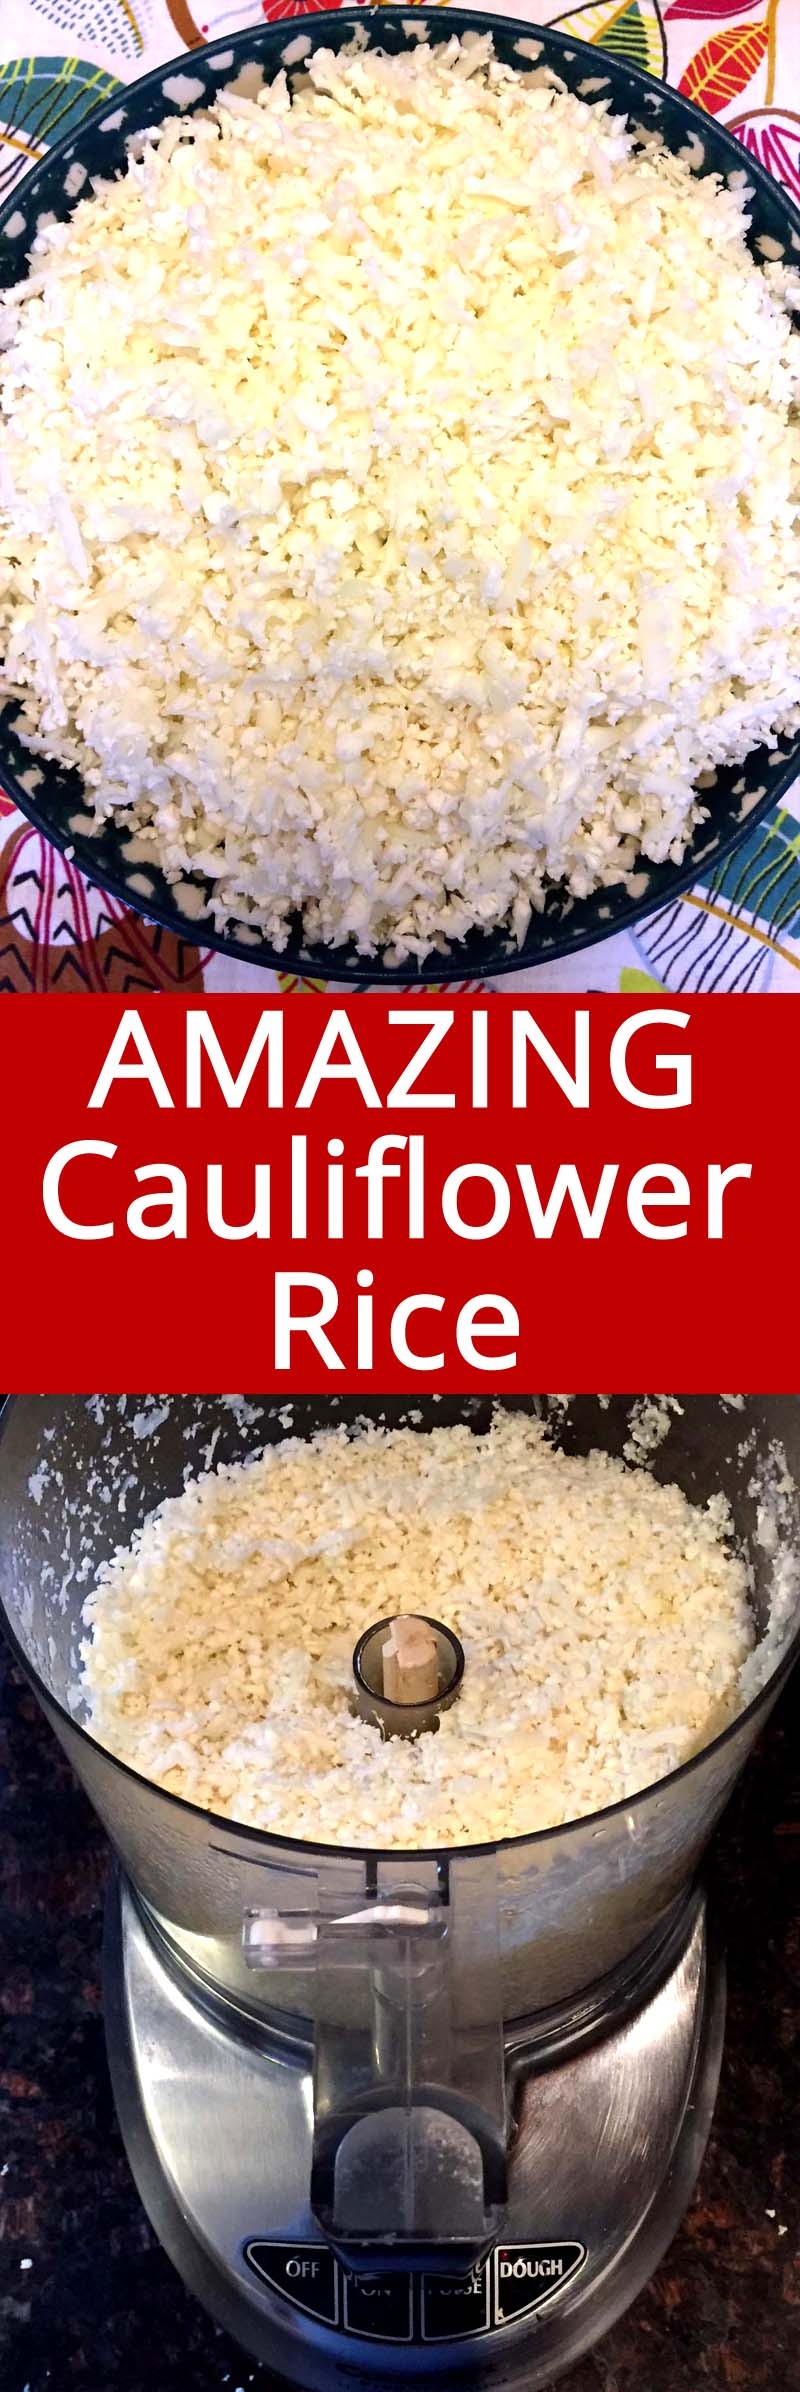 This cauliflower rice tastes amazing! I actually prefer it to real rice! This is the only cauliflower rice recipe you'll ever need!